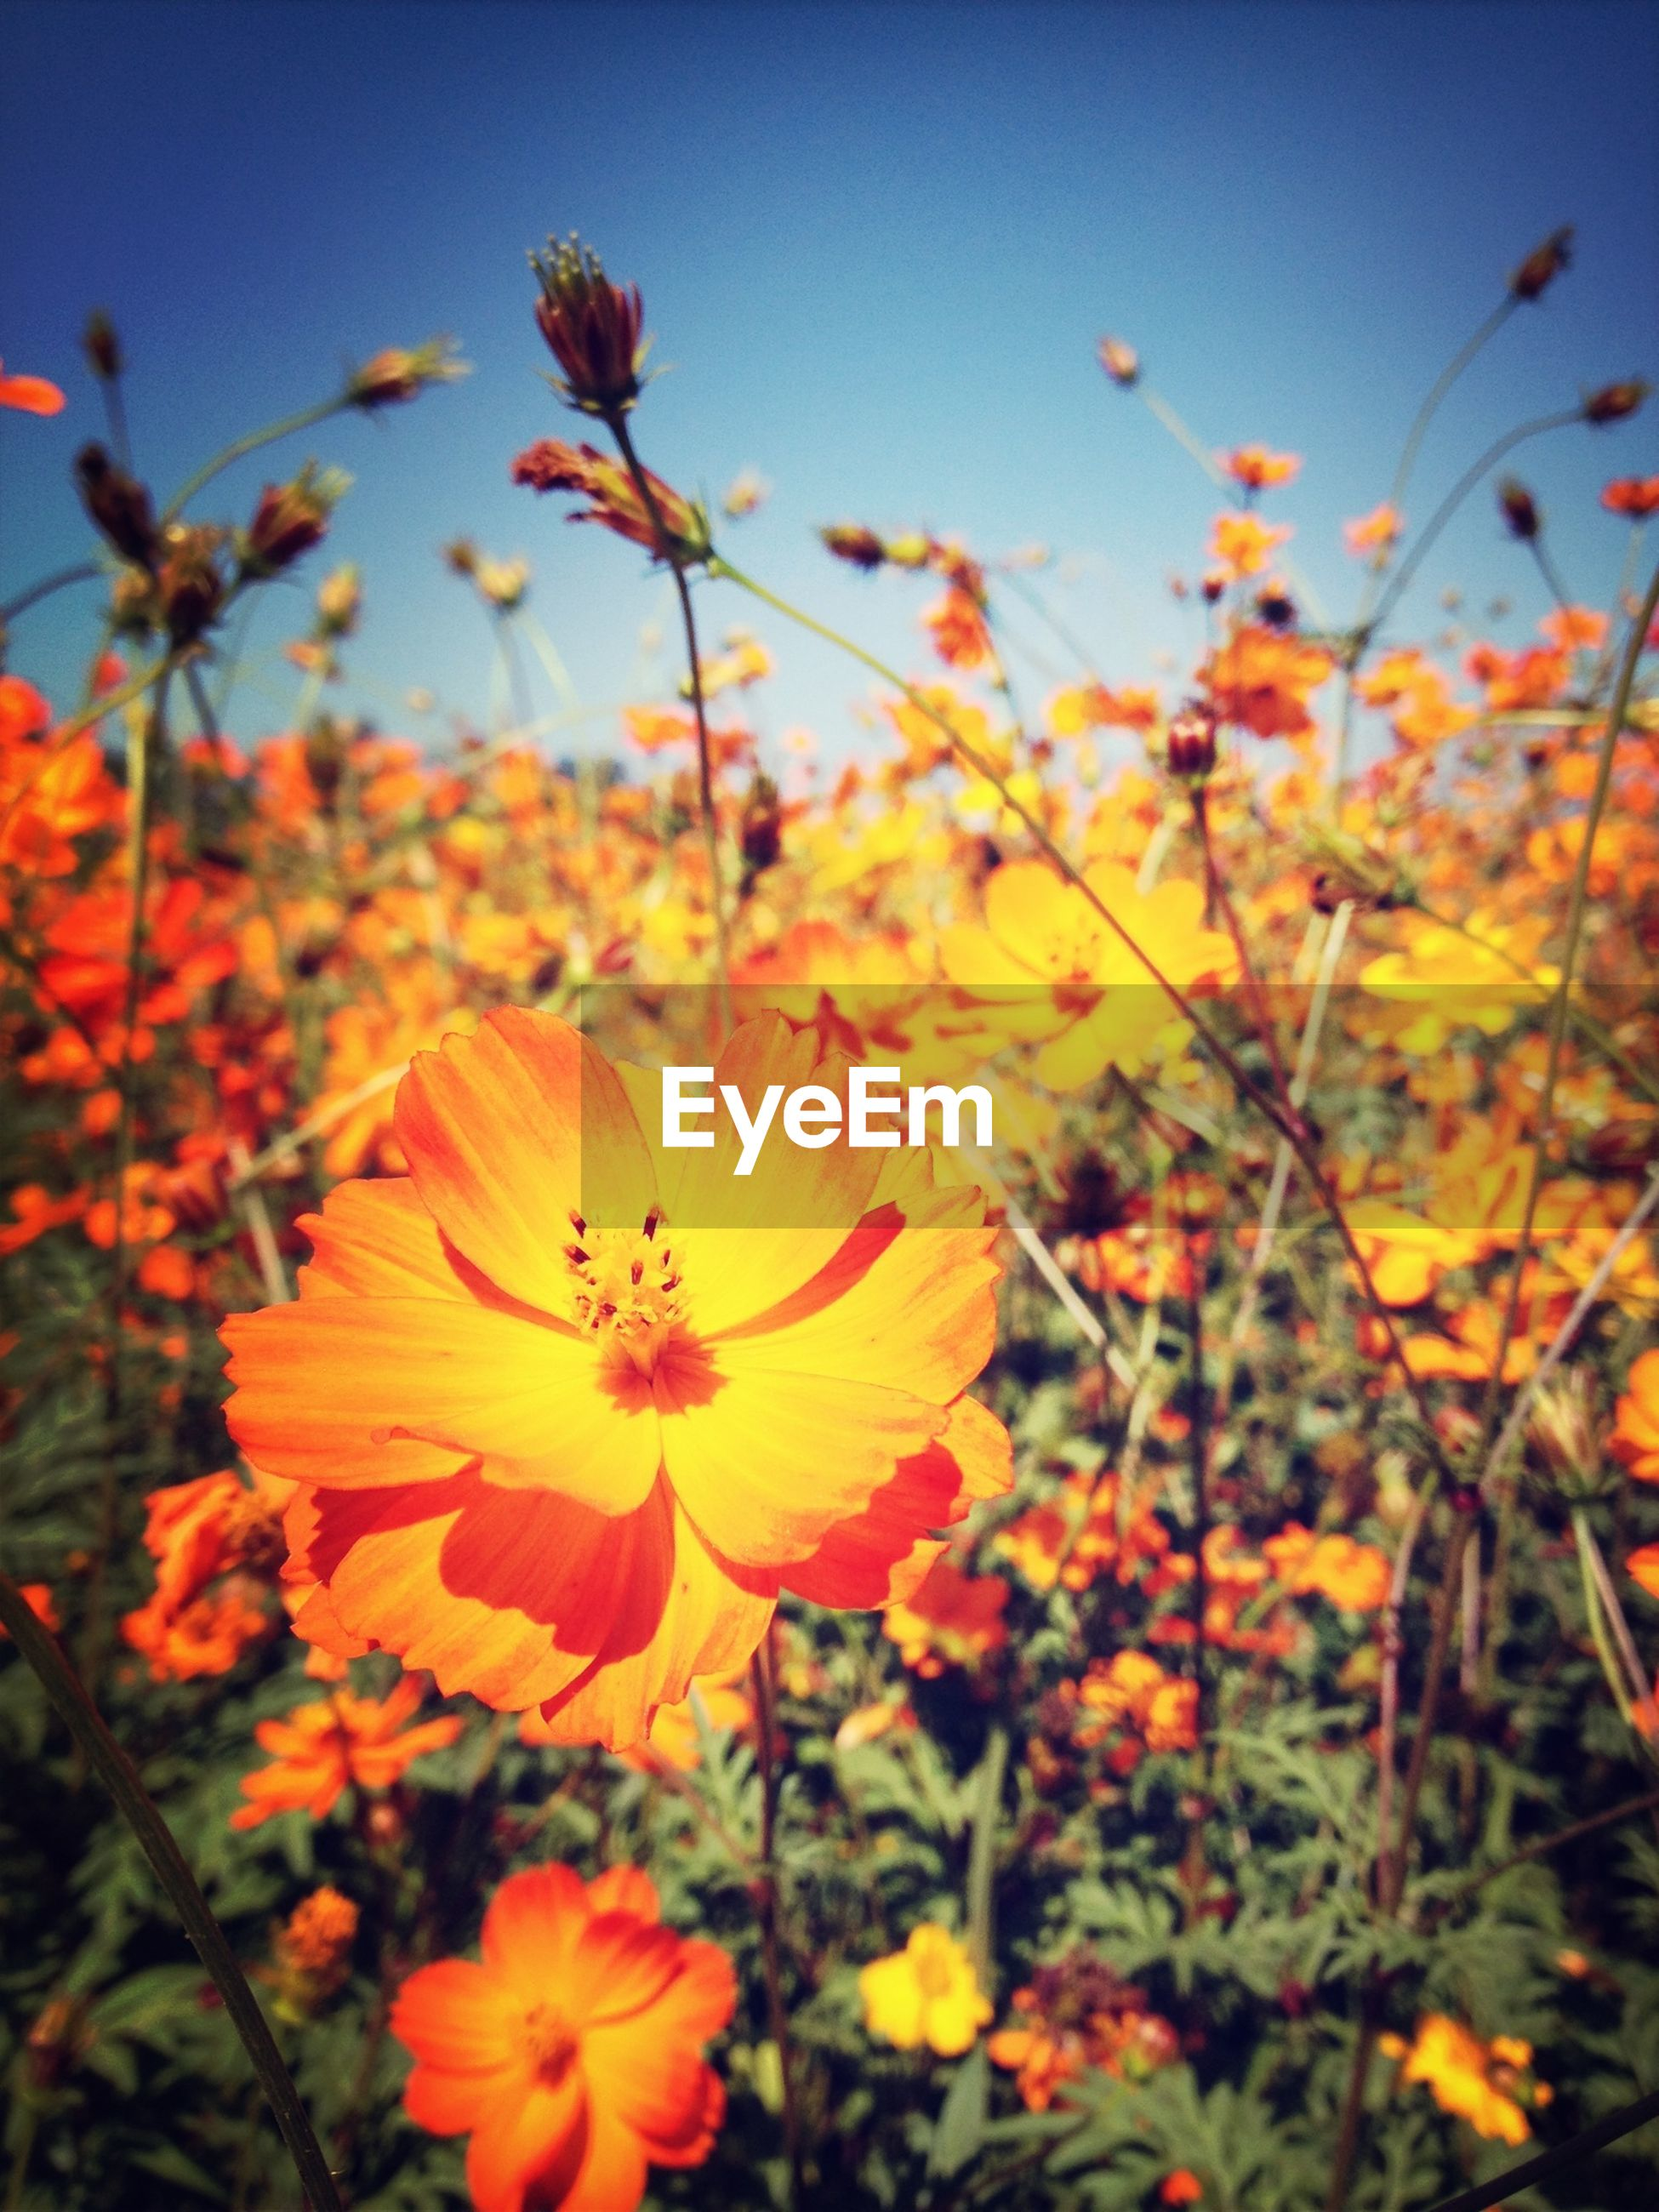 flower, freshness, fragility, petal, growth, flower head, beauty in nature, blooming, nature, yellow, plant, focus on foreground, in bloom, close-up, field, blossom, stem, springtime, sky, no people